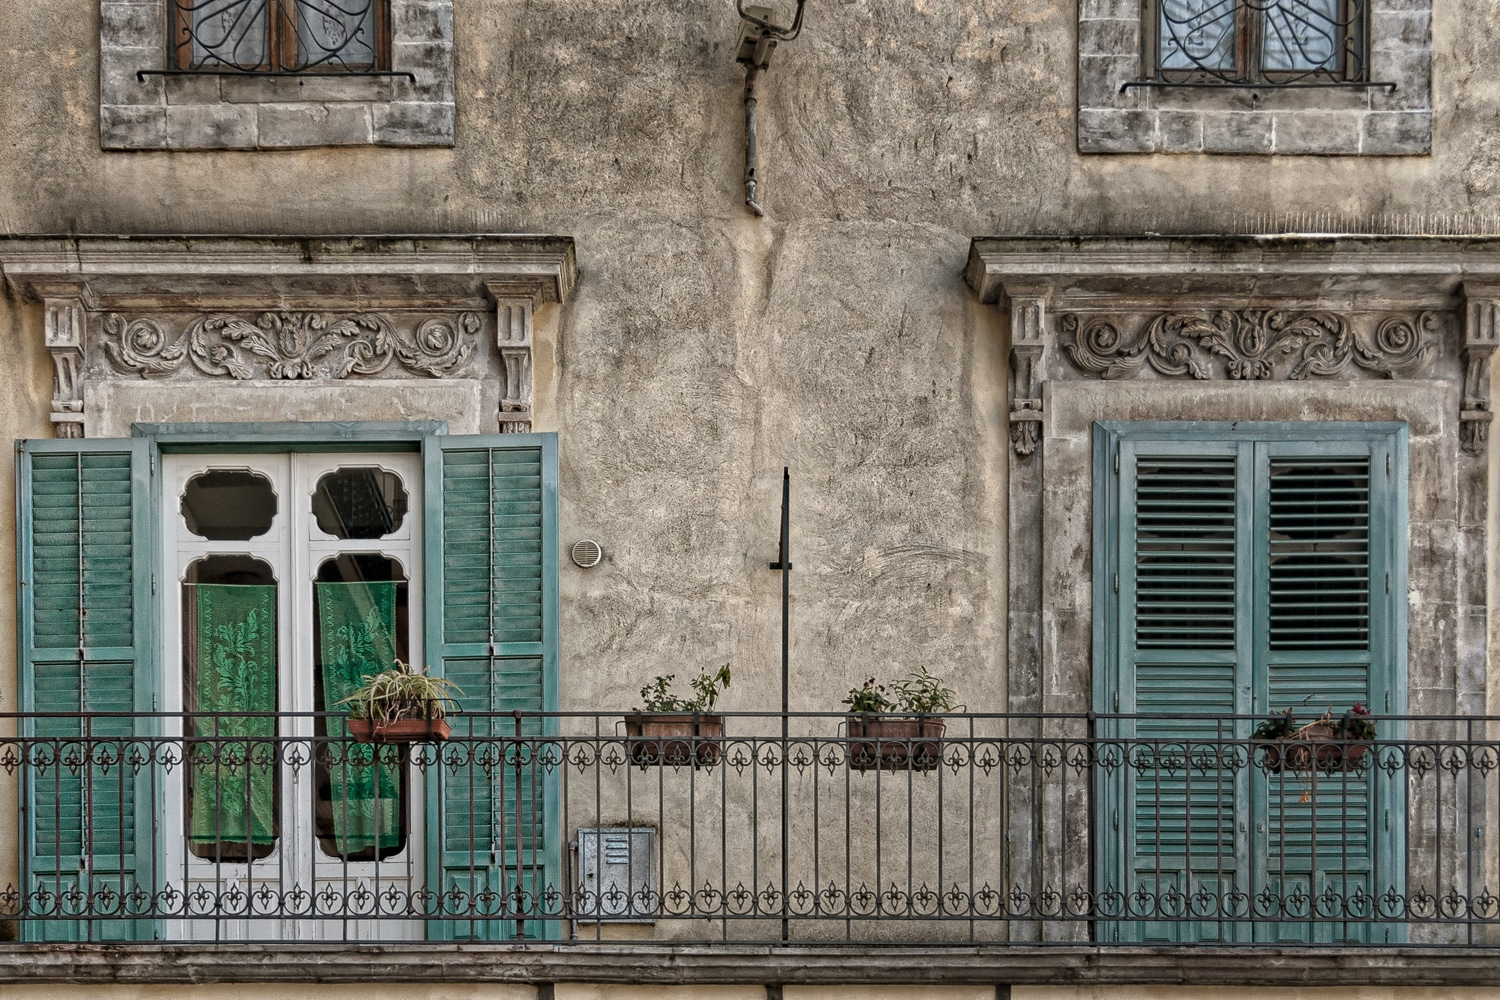 Aperti e Chiusi (Open and Closed) | Turquoise Shutters on a Sicilian Balcony | Modica | Sicily | Italy